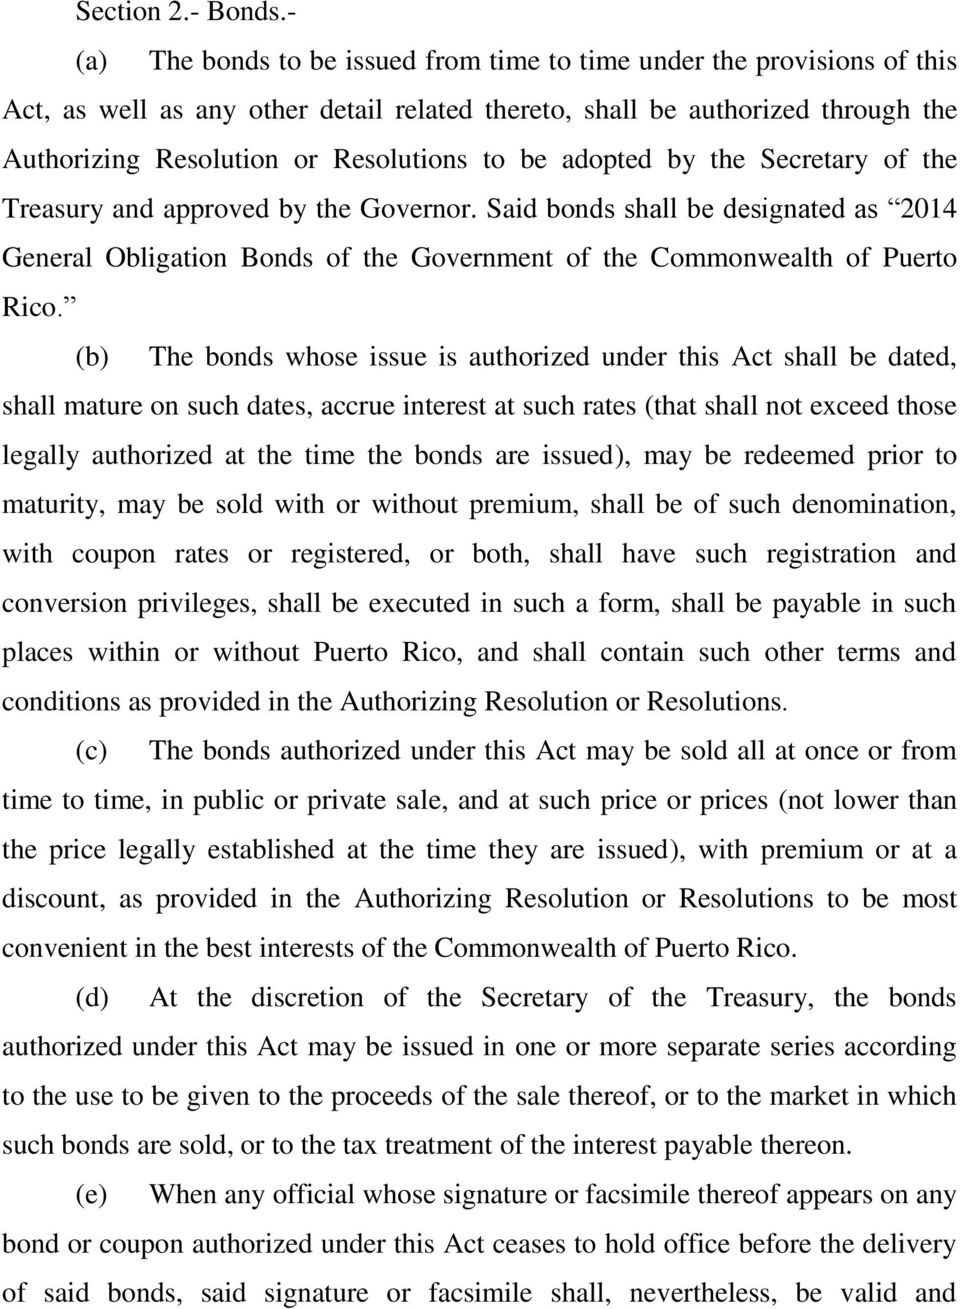 be adopted by the Secretary of the Treasury and approved by the Governor. Said bonds shall be designated as 2014 General Obligation Bonds of the Government of the Commonwealth of Puerto Rico.